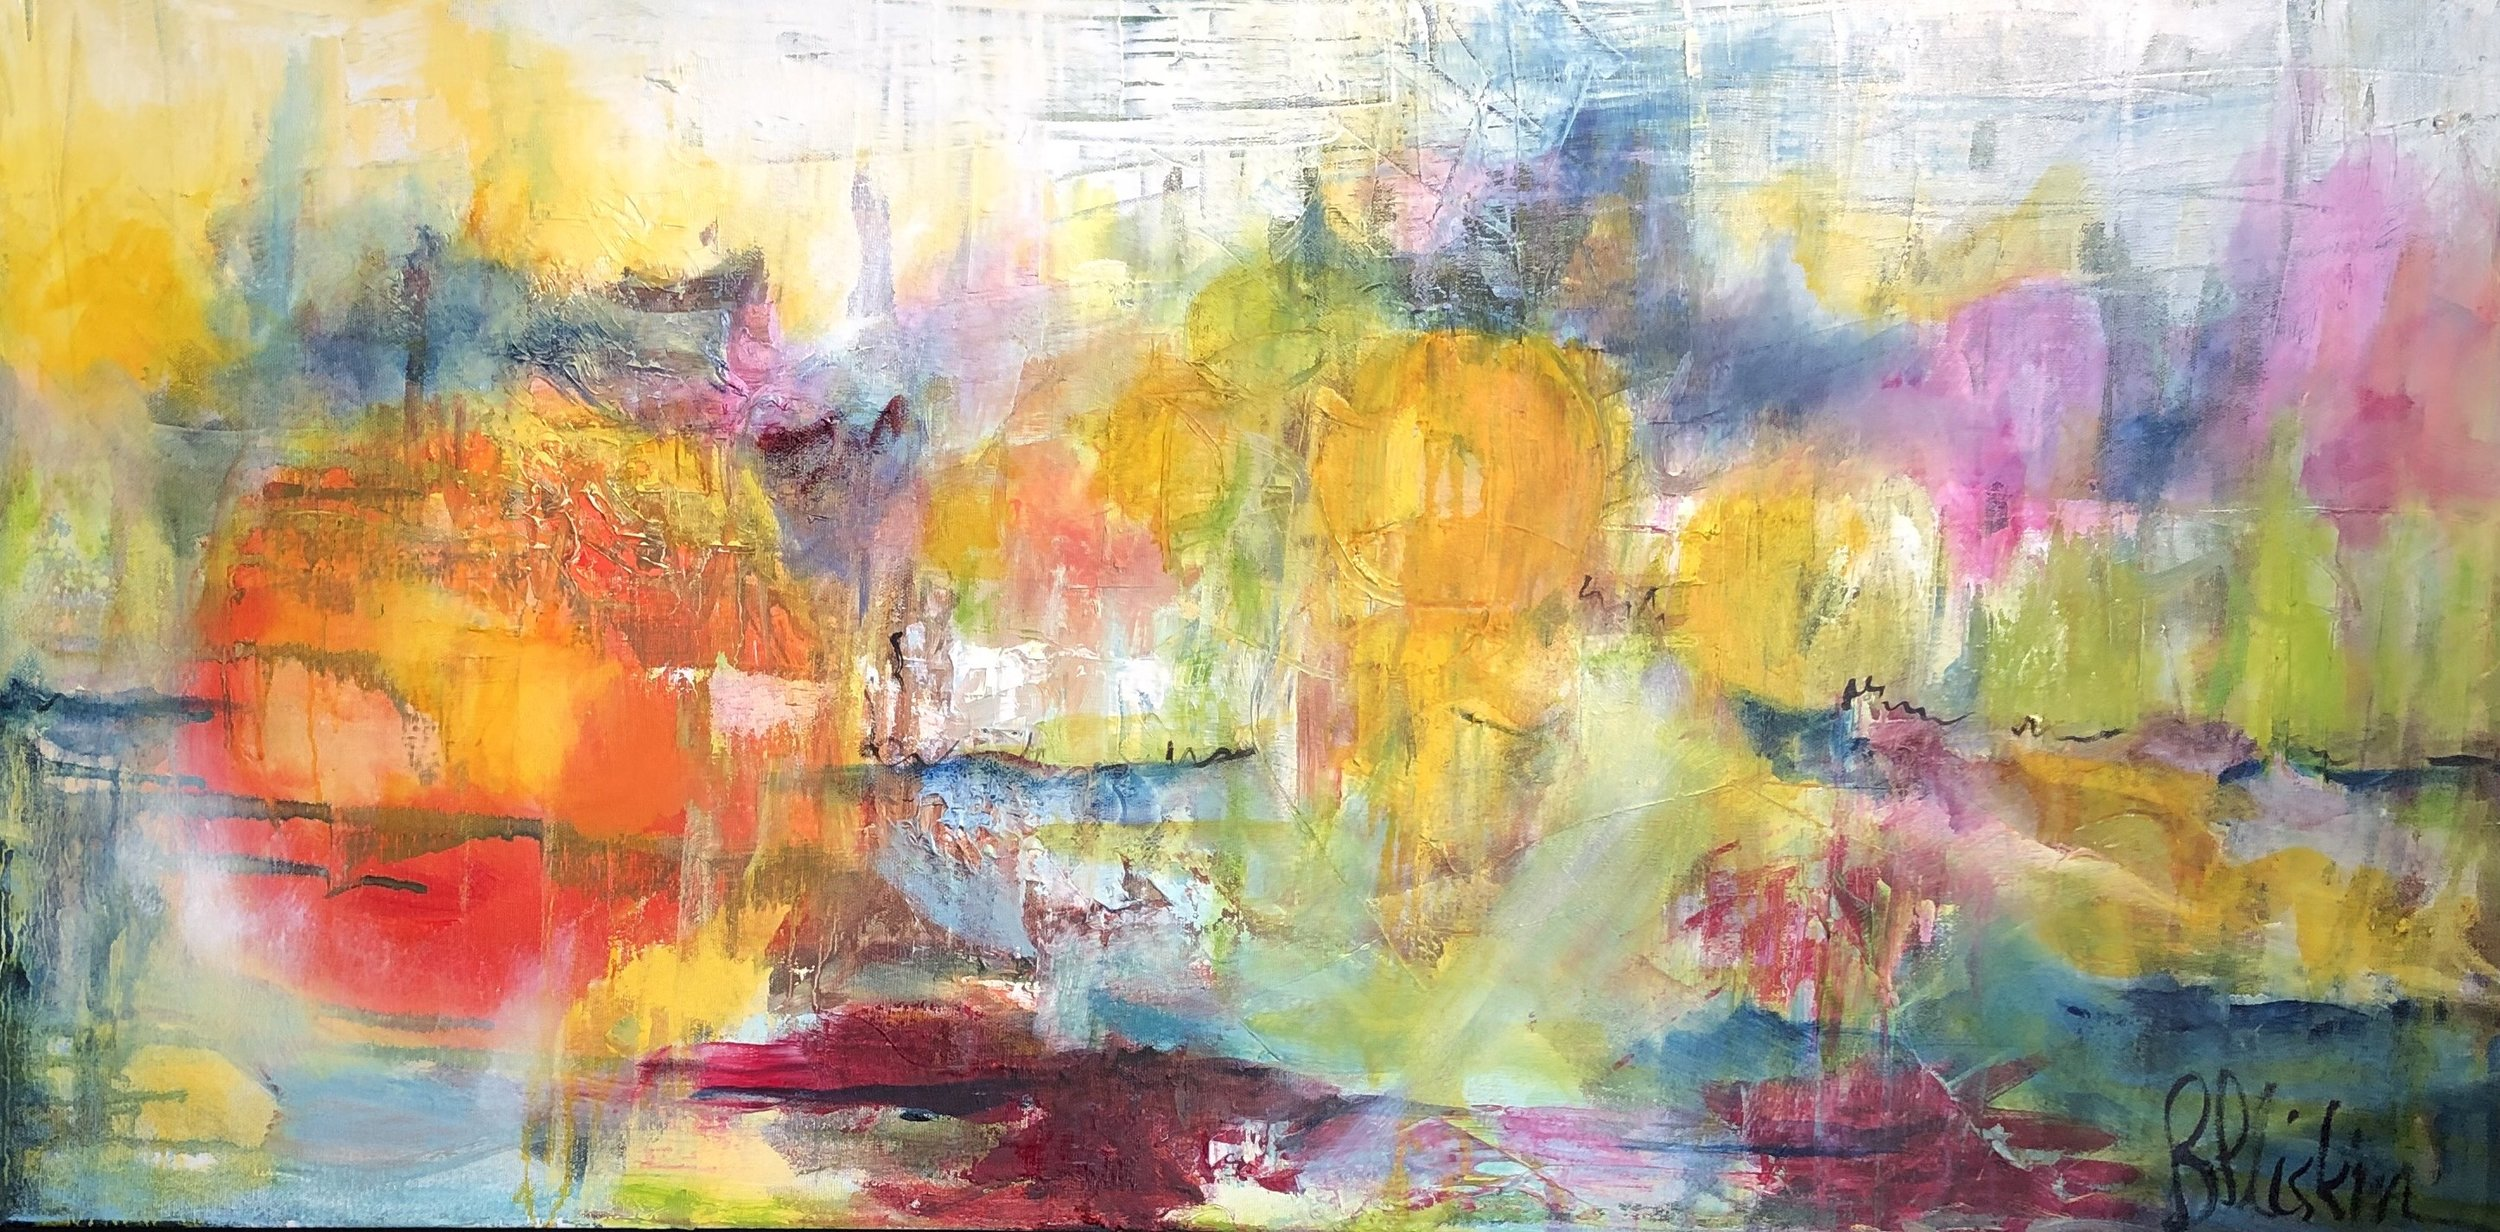 Barbara Pliskin - Sun Series IV - oil on canvas - 18 x 36